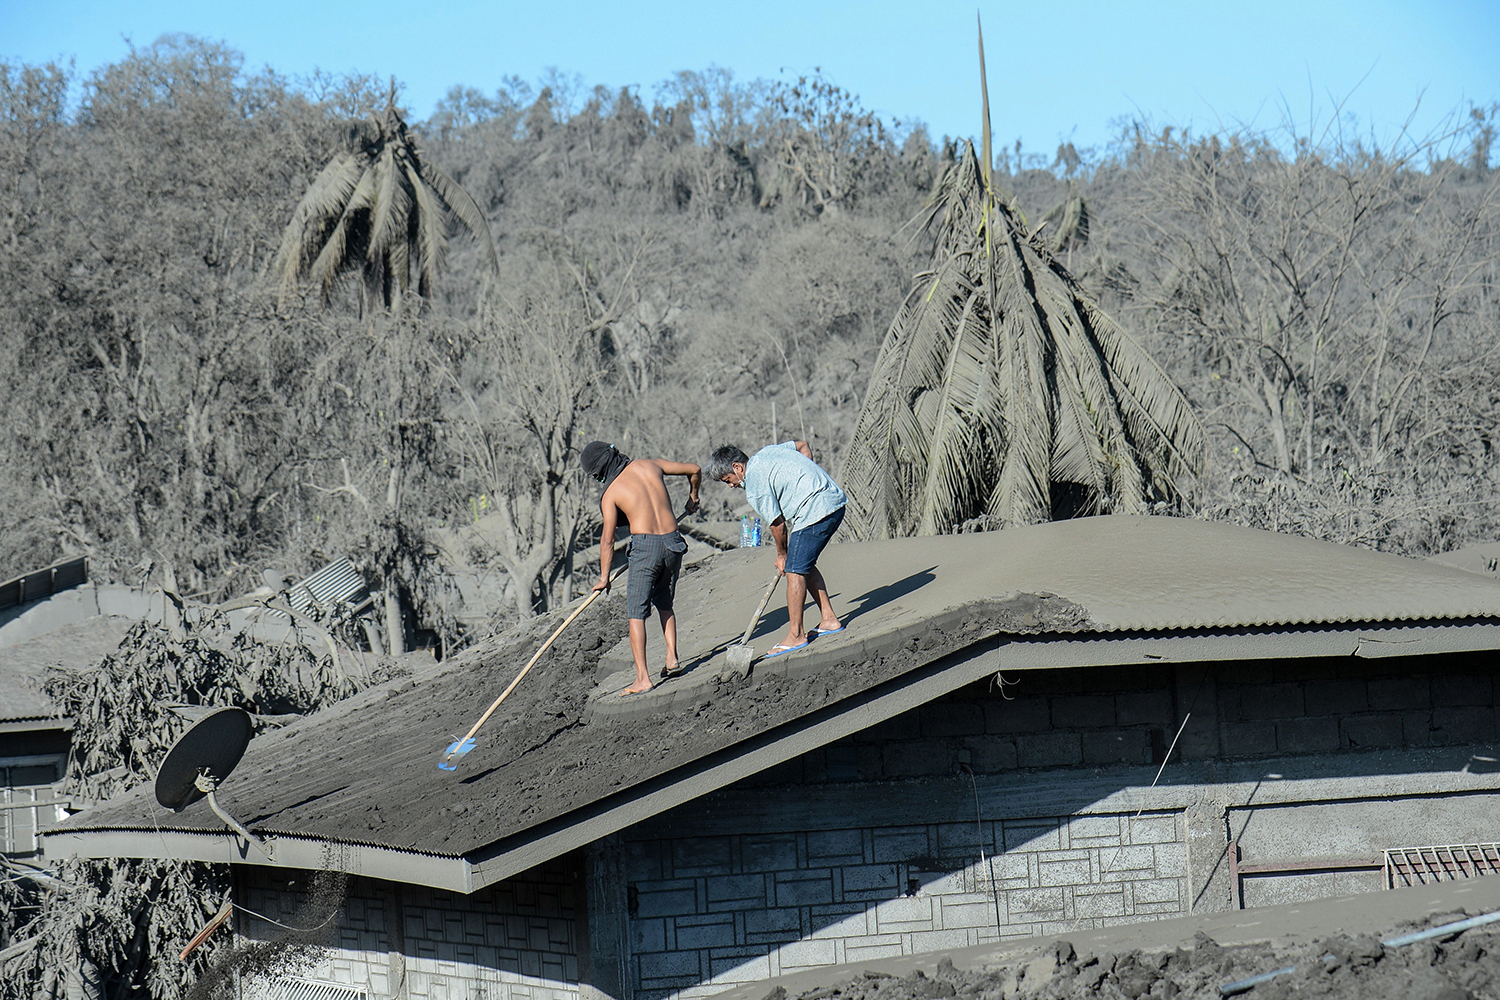 Residents work to clear the roof of their home of mud and ash due to the eruption of the nearby Taal volcano at a village in Laurel, Batangas province, in the Philippines on Jan. 16. TED ALJIBE/AFP via Getty Images